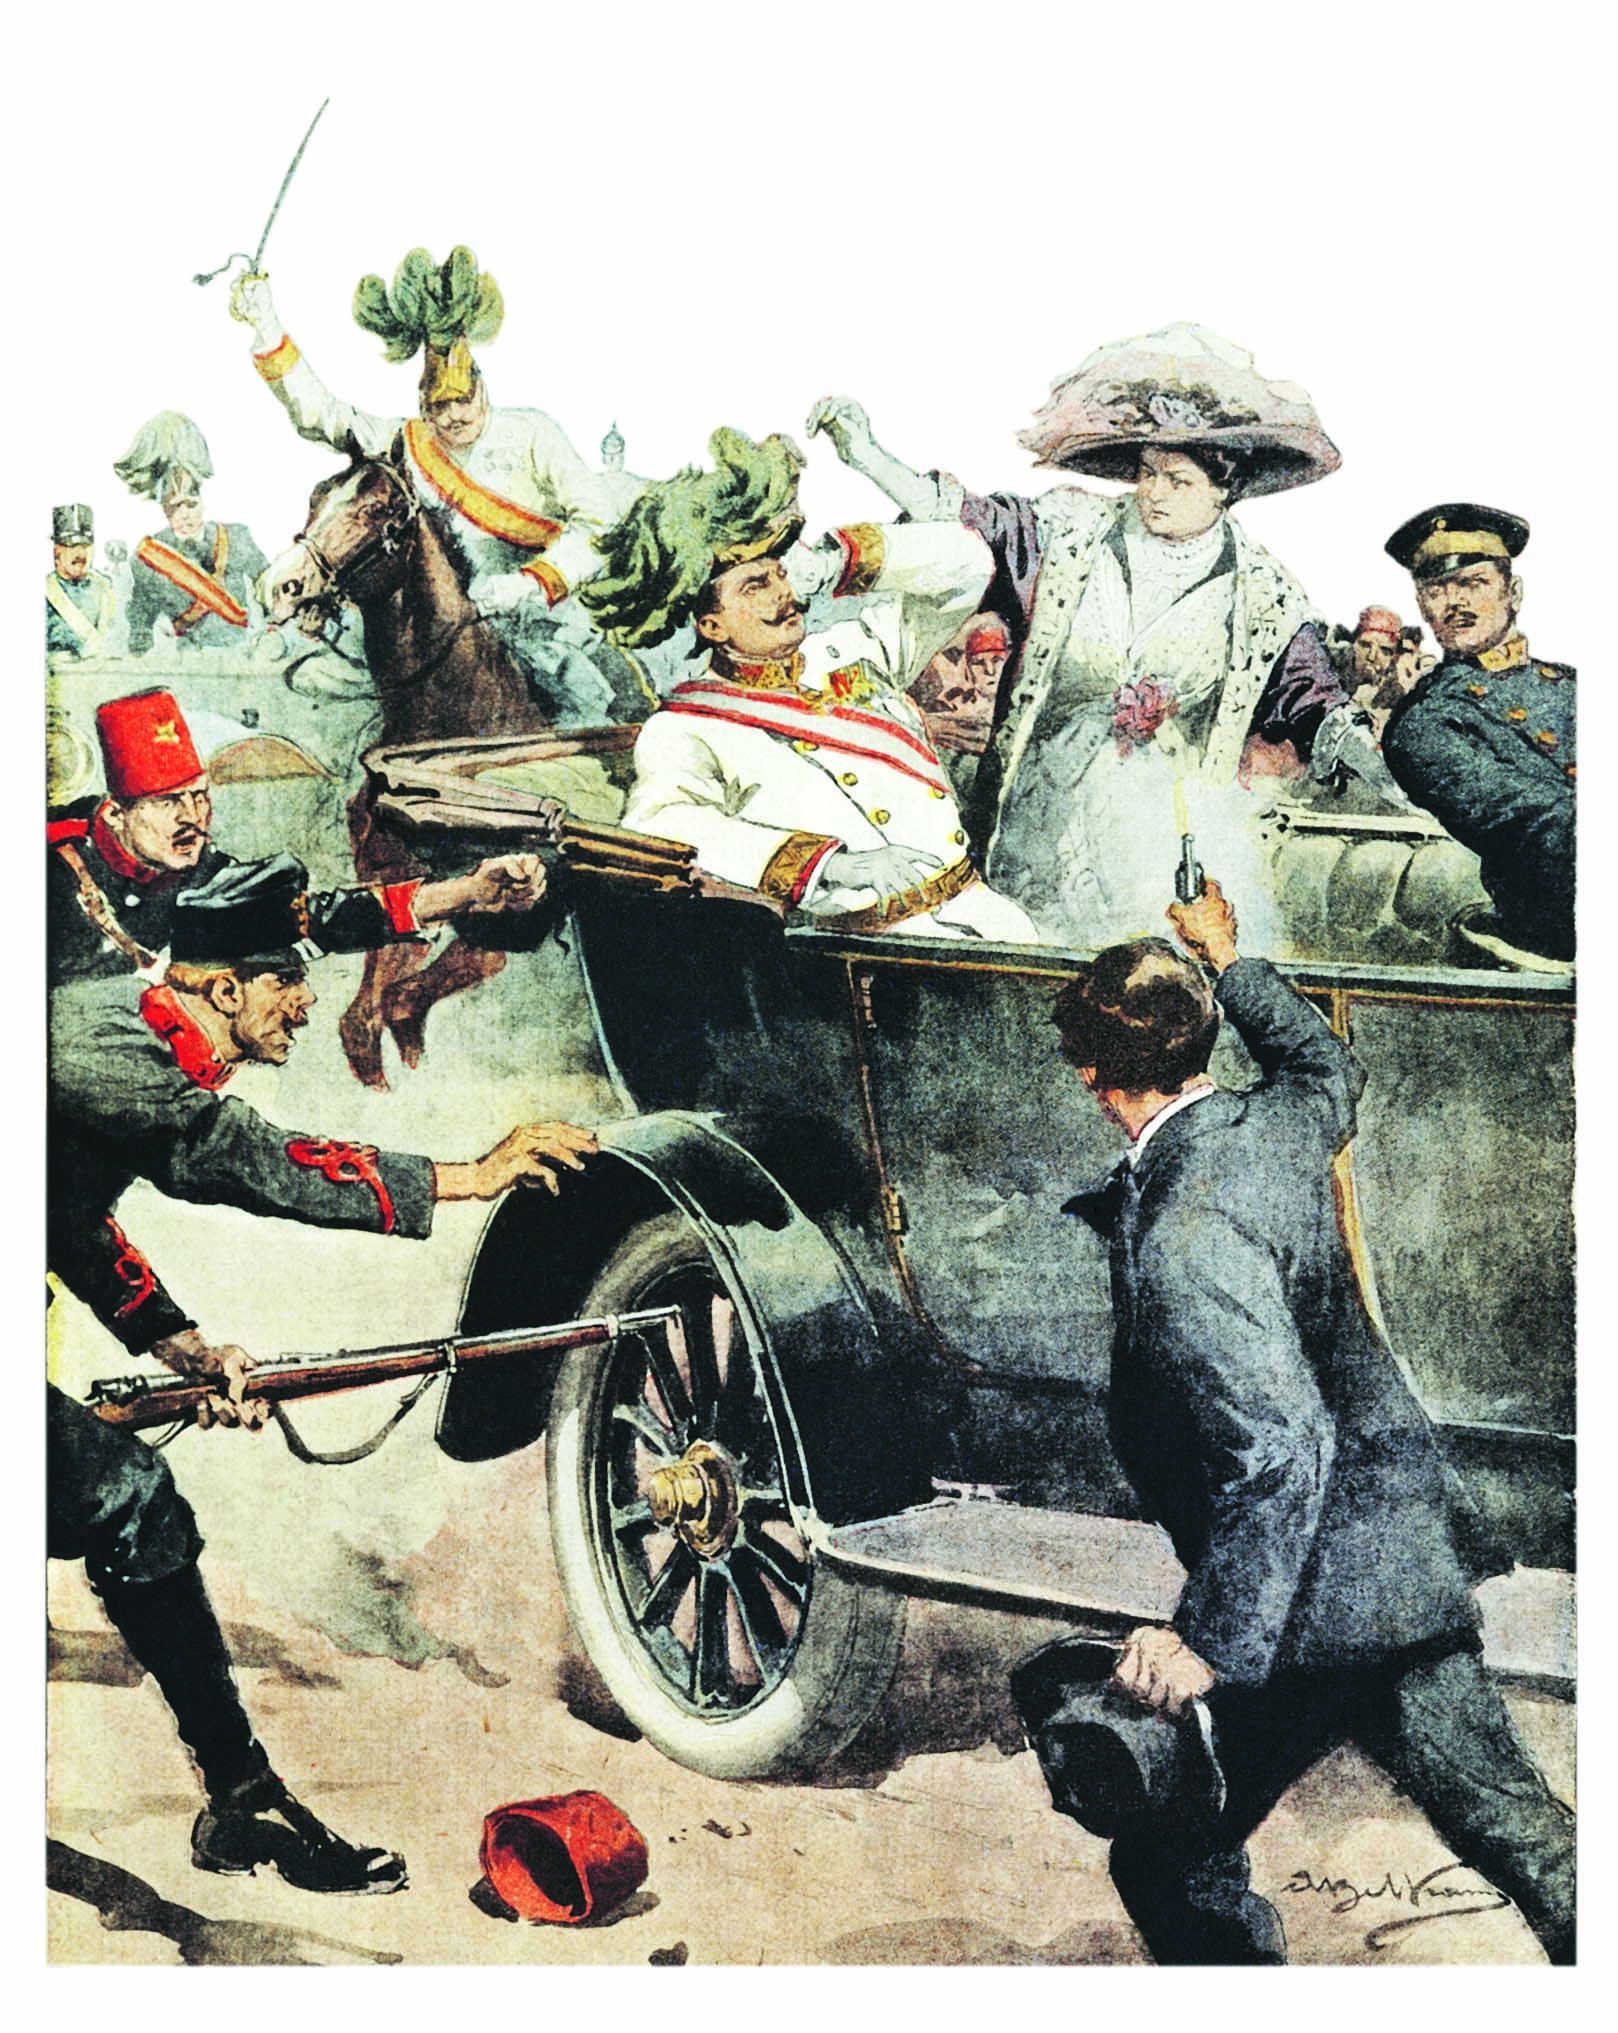 assassination-of-archduke-franz-ferdinand-1